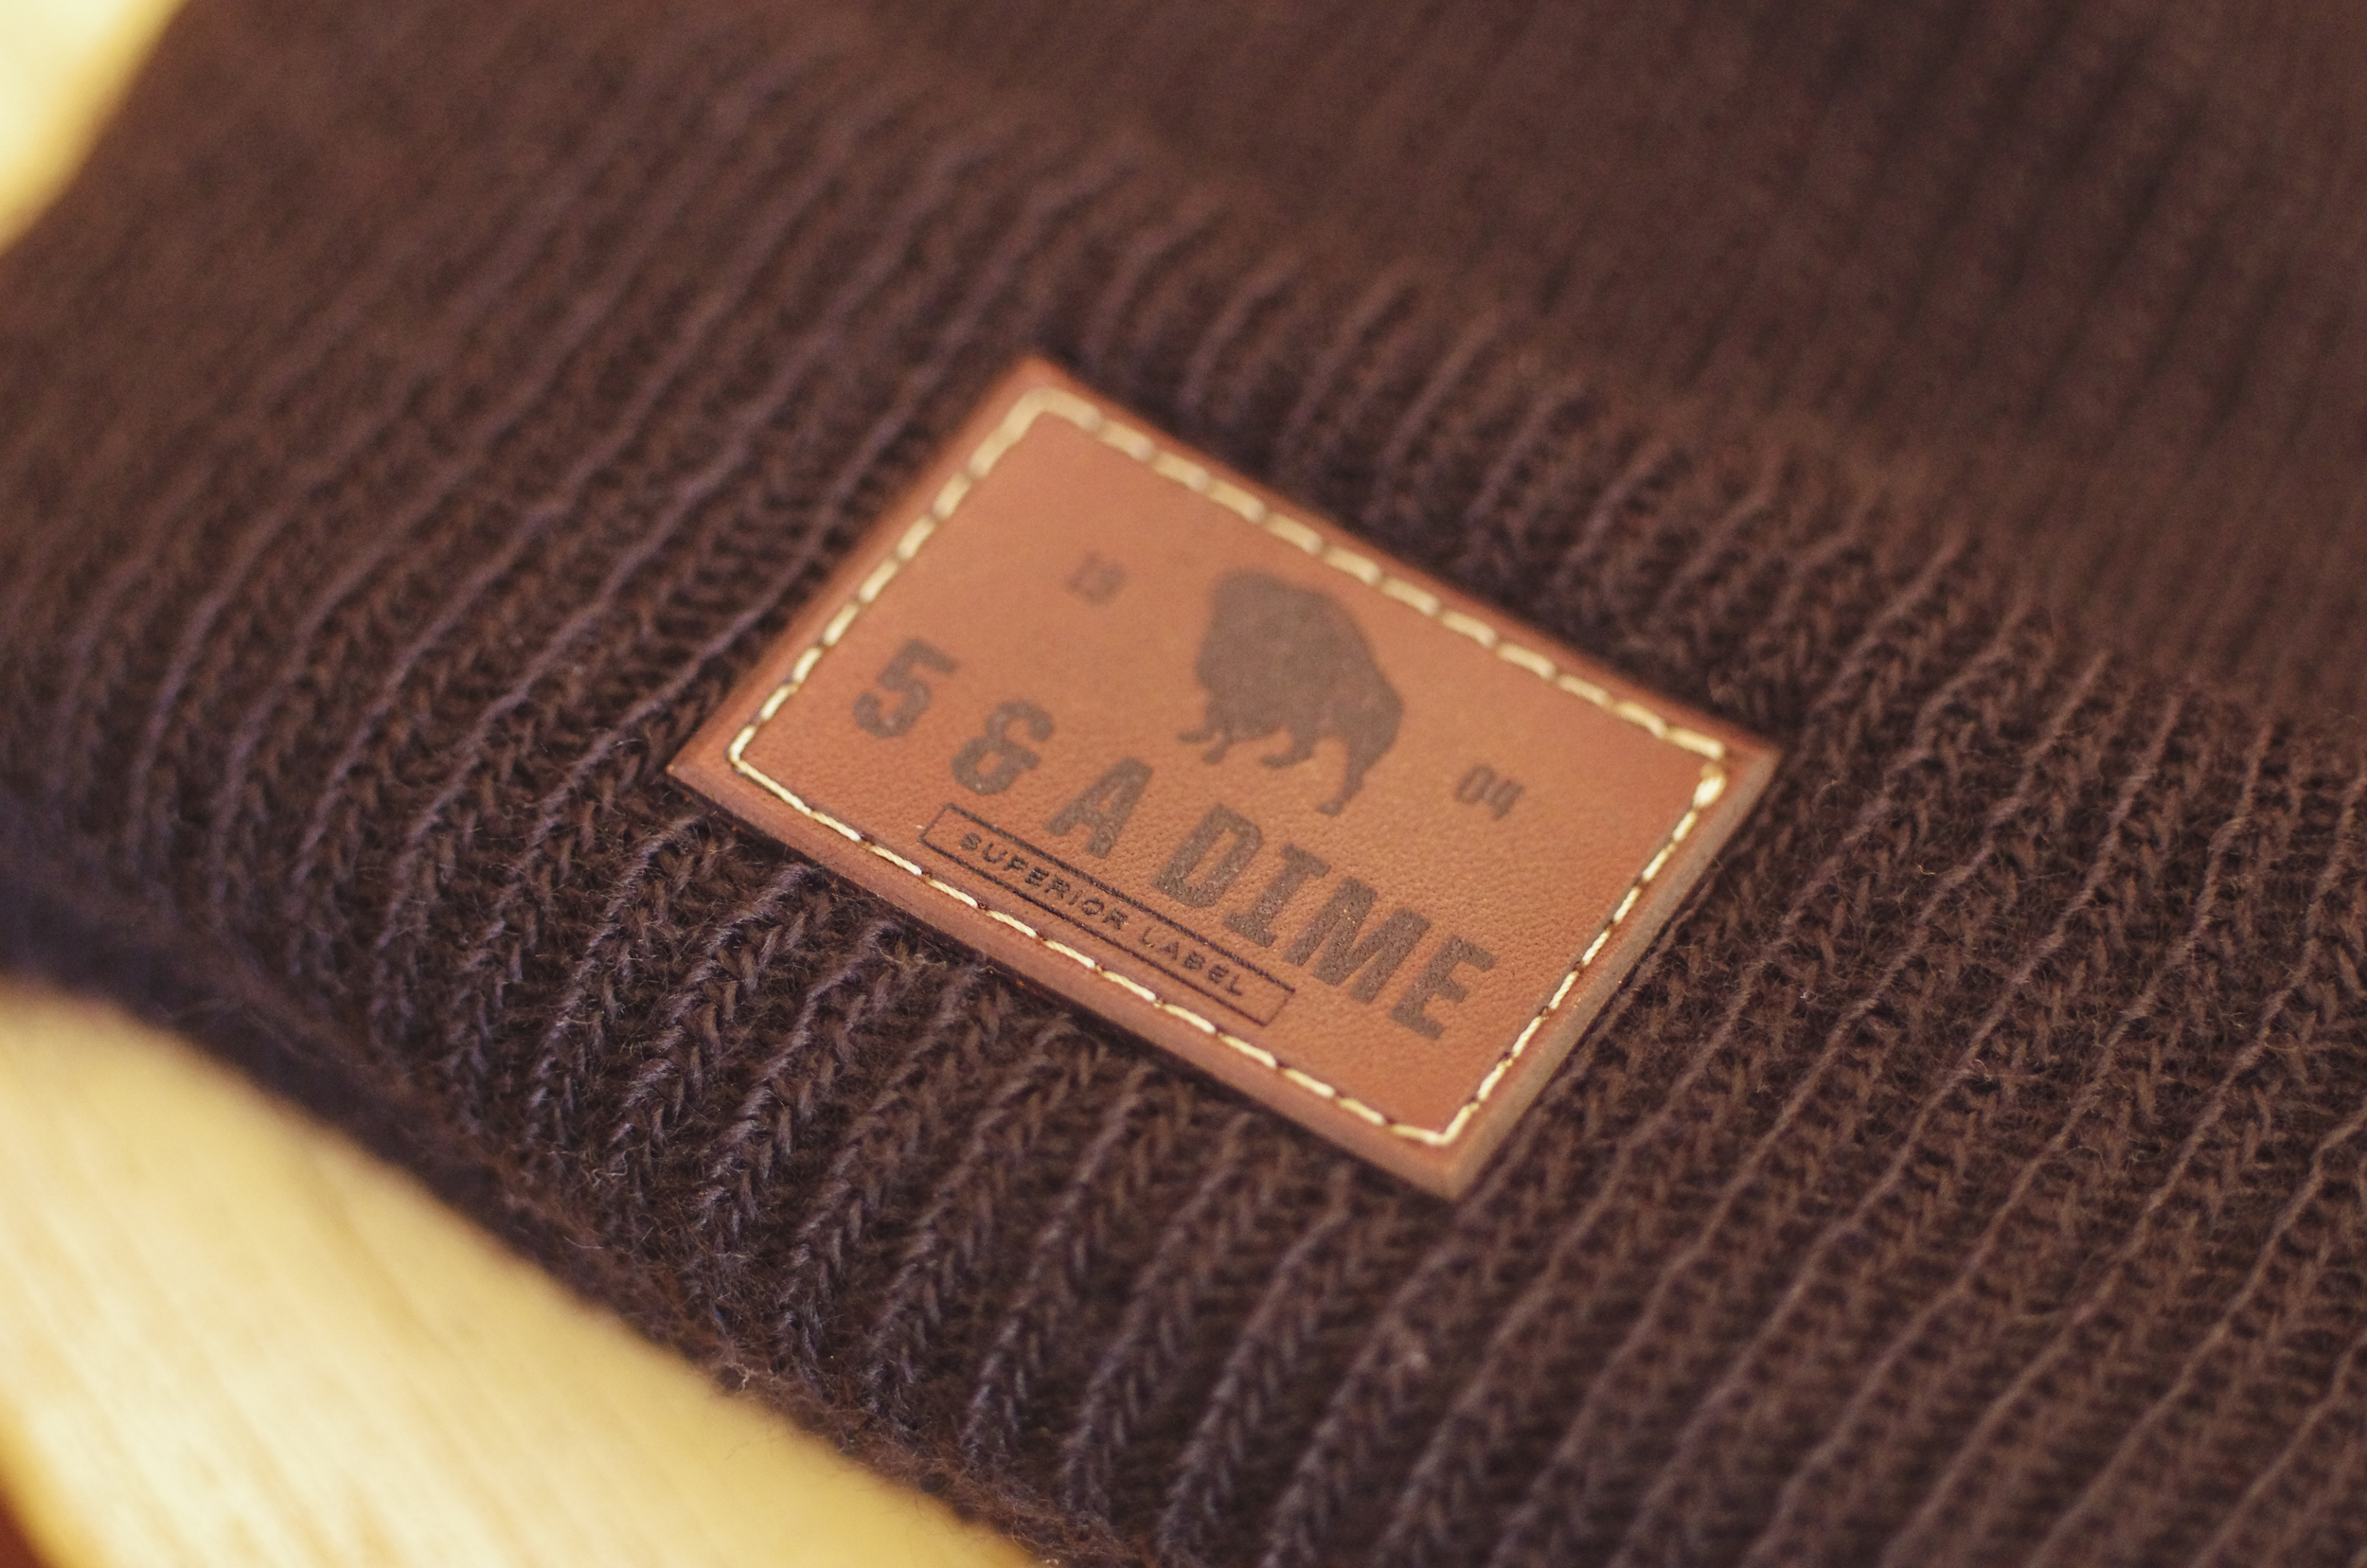 One of my favorite beanies. It's a little hot right now, but pick one up and you'll be prepared for fall semester!